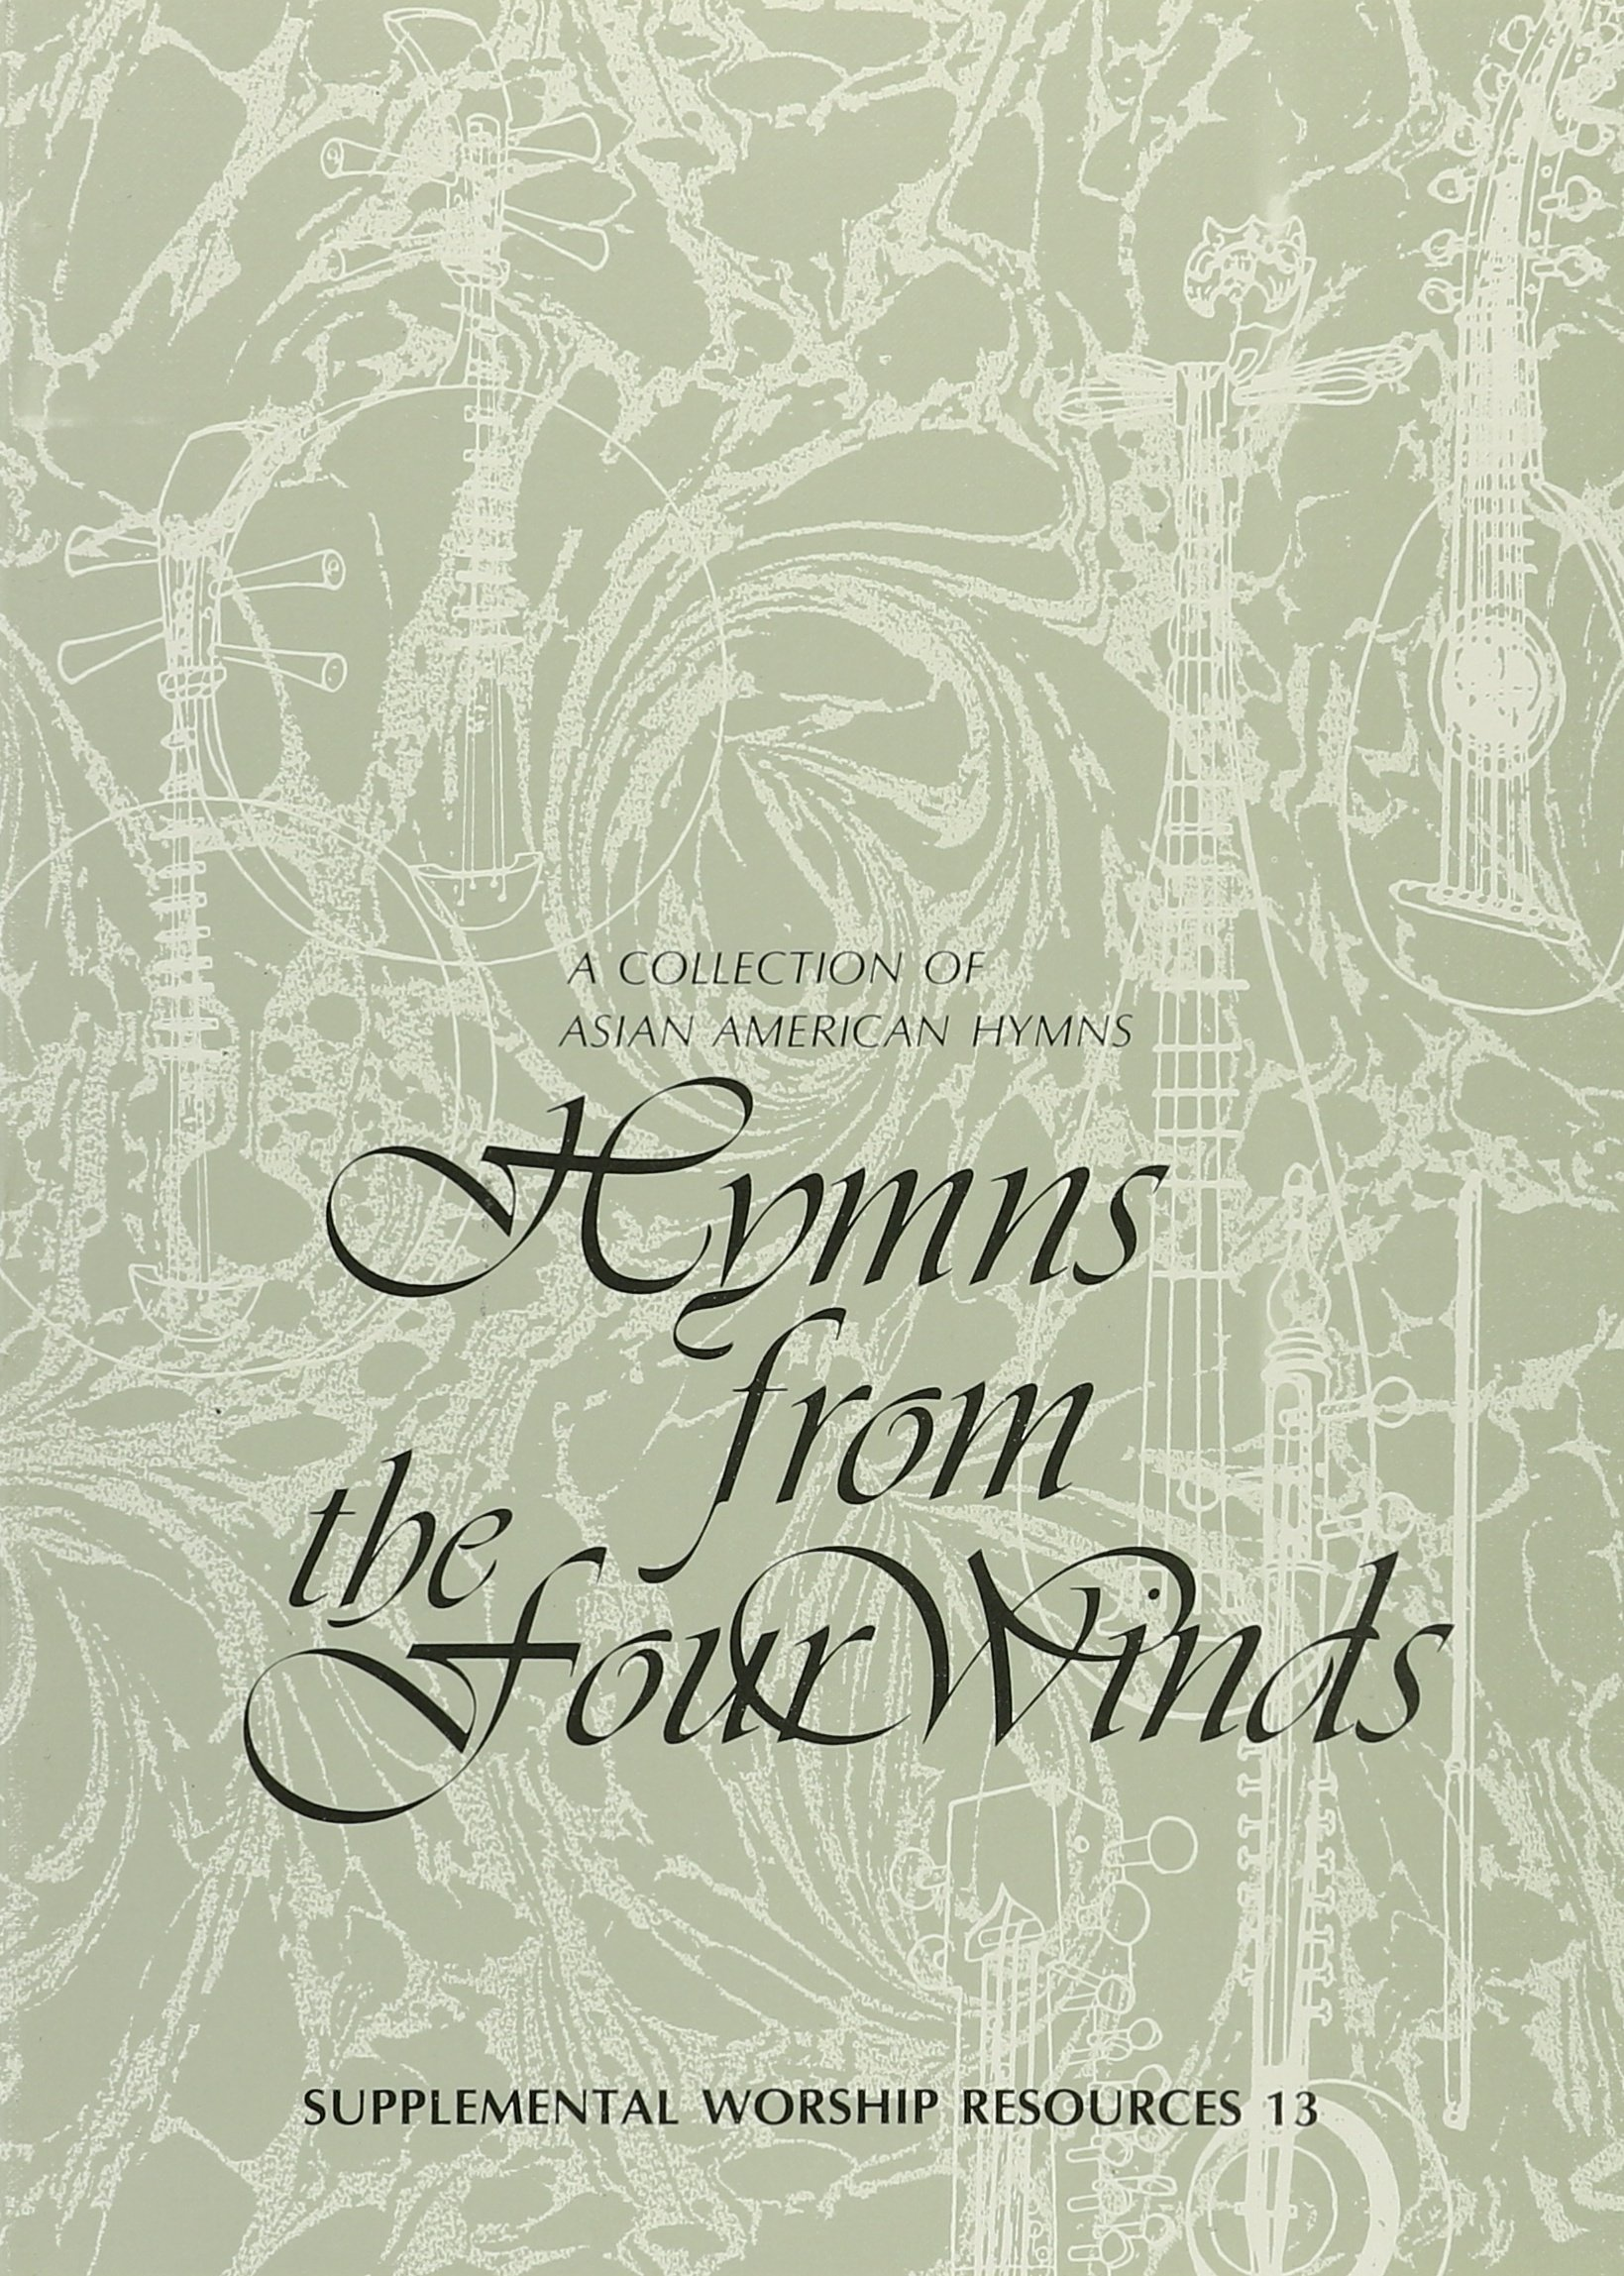 Hymns from the Four Winds